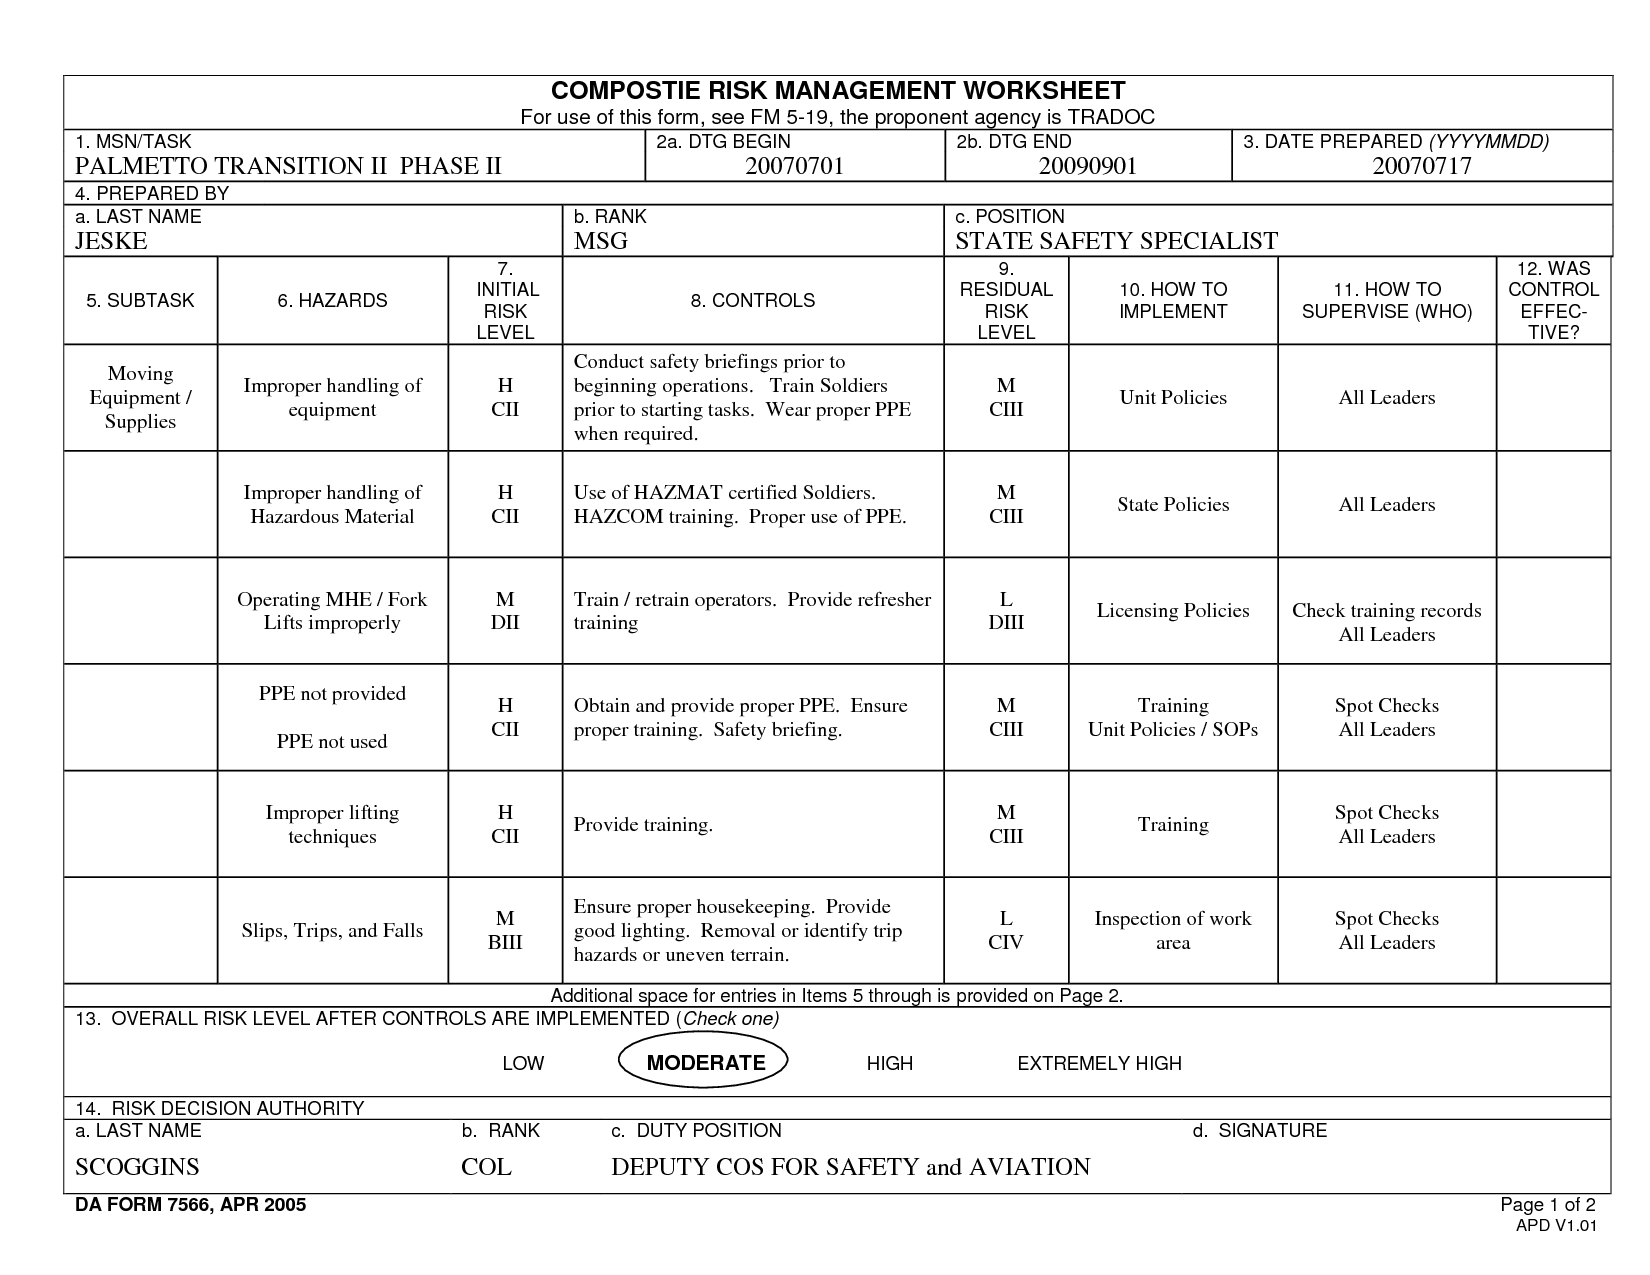 Army Composite Risk Management Worksheet